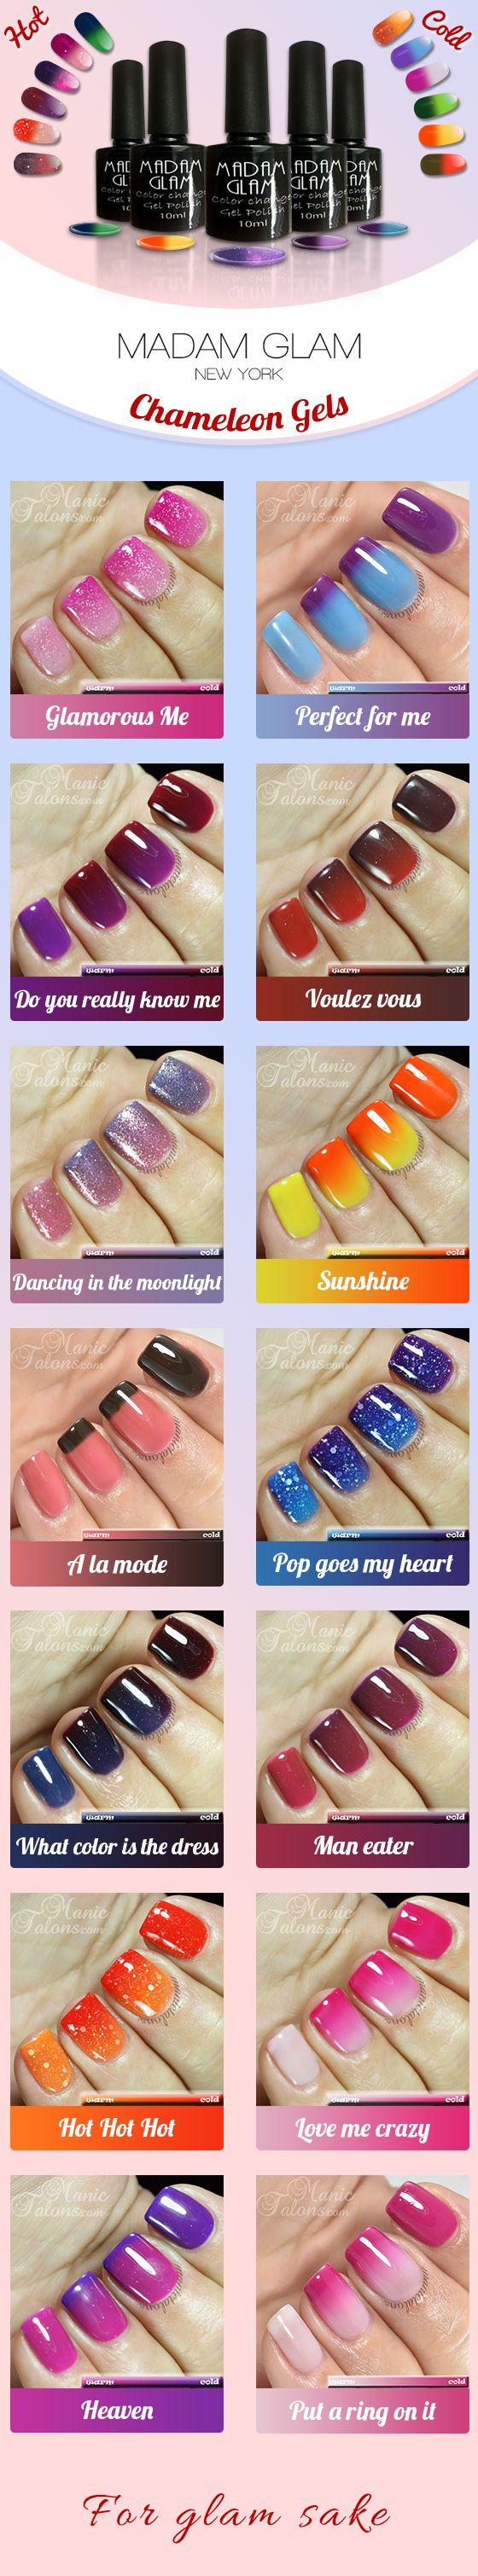 You're hot then you're cold! See those chameleon gels change colors as your nails change temperature! Click, sign up and shop them all at 50%off now! https://www.madamglam.com/?utm_source=pinterestad-chameleonswatches